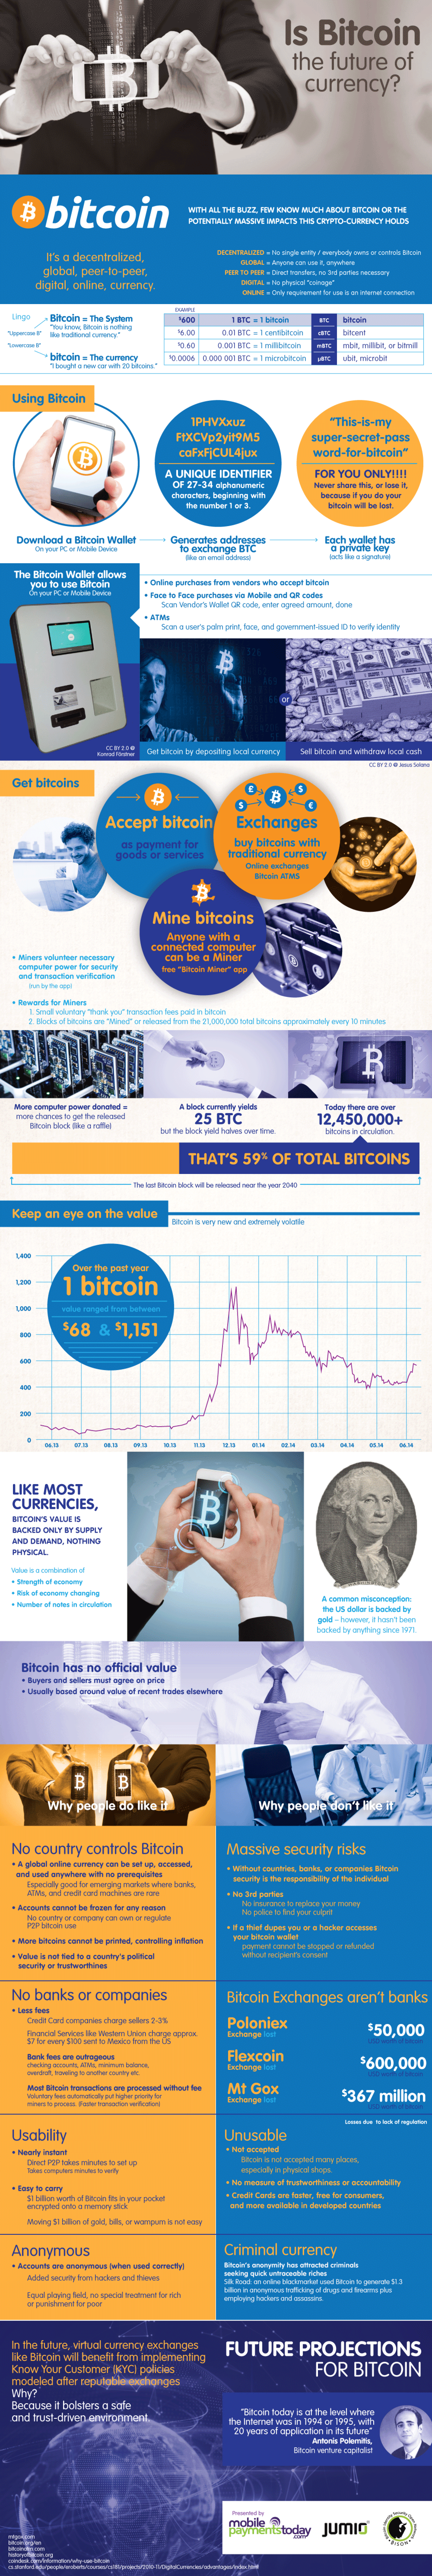 Bitcoin: The Future of Currency? Infographic